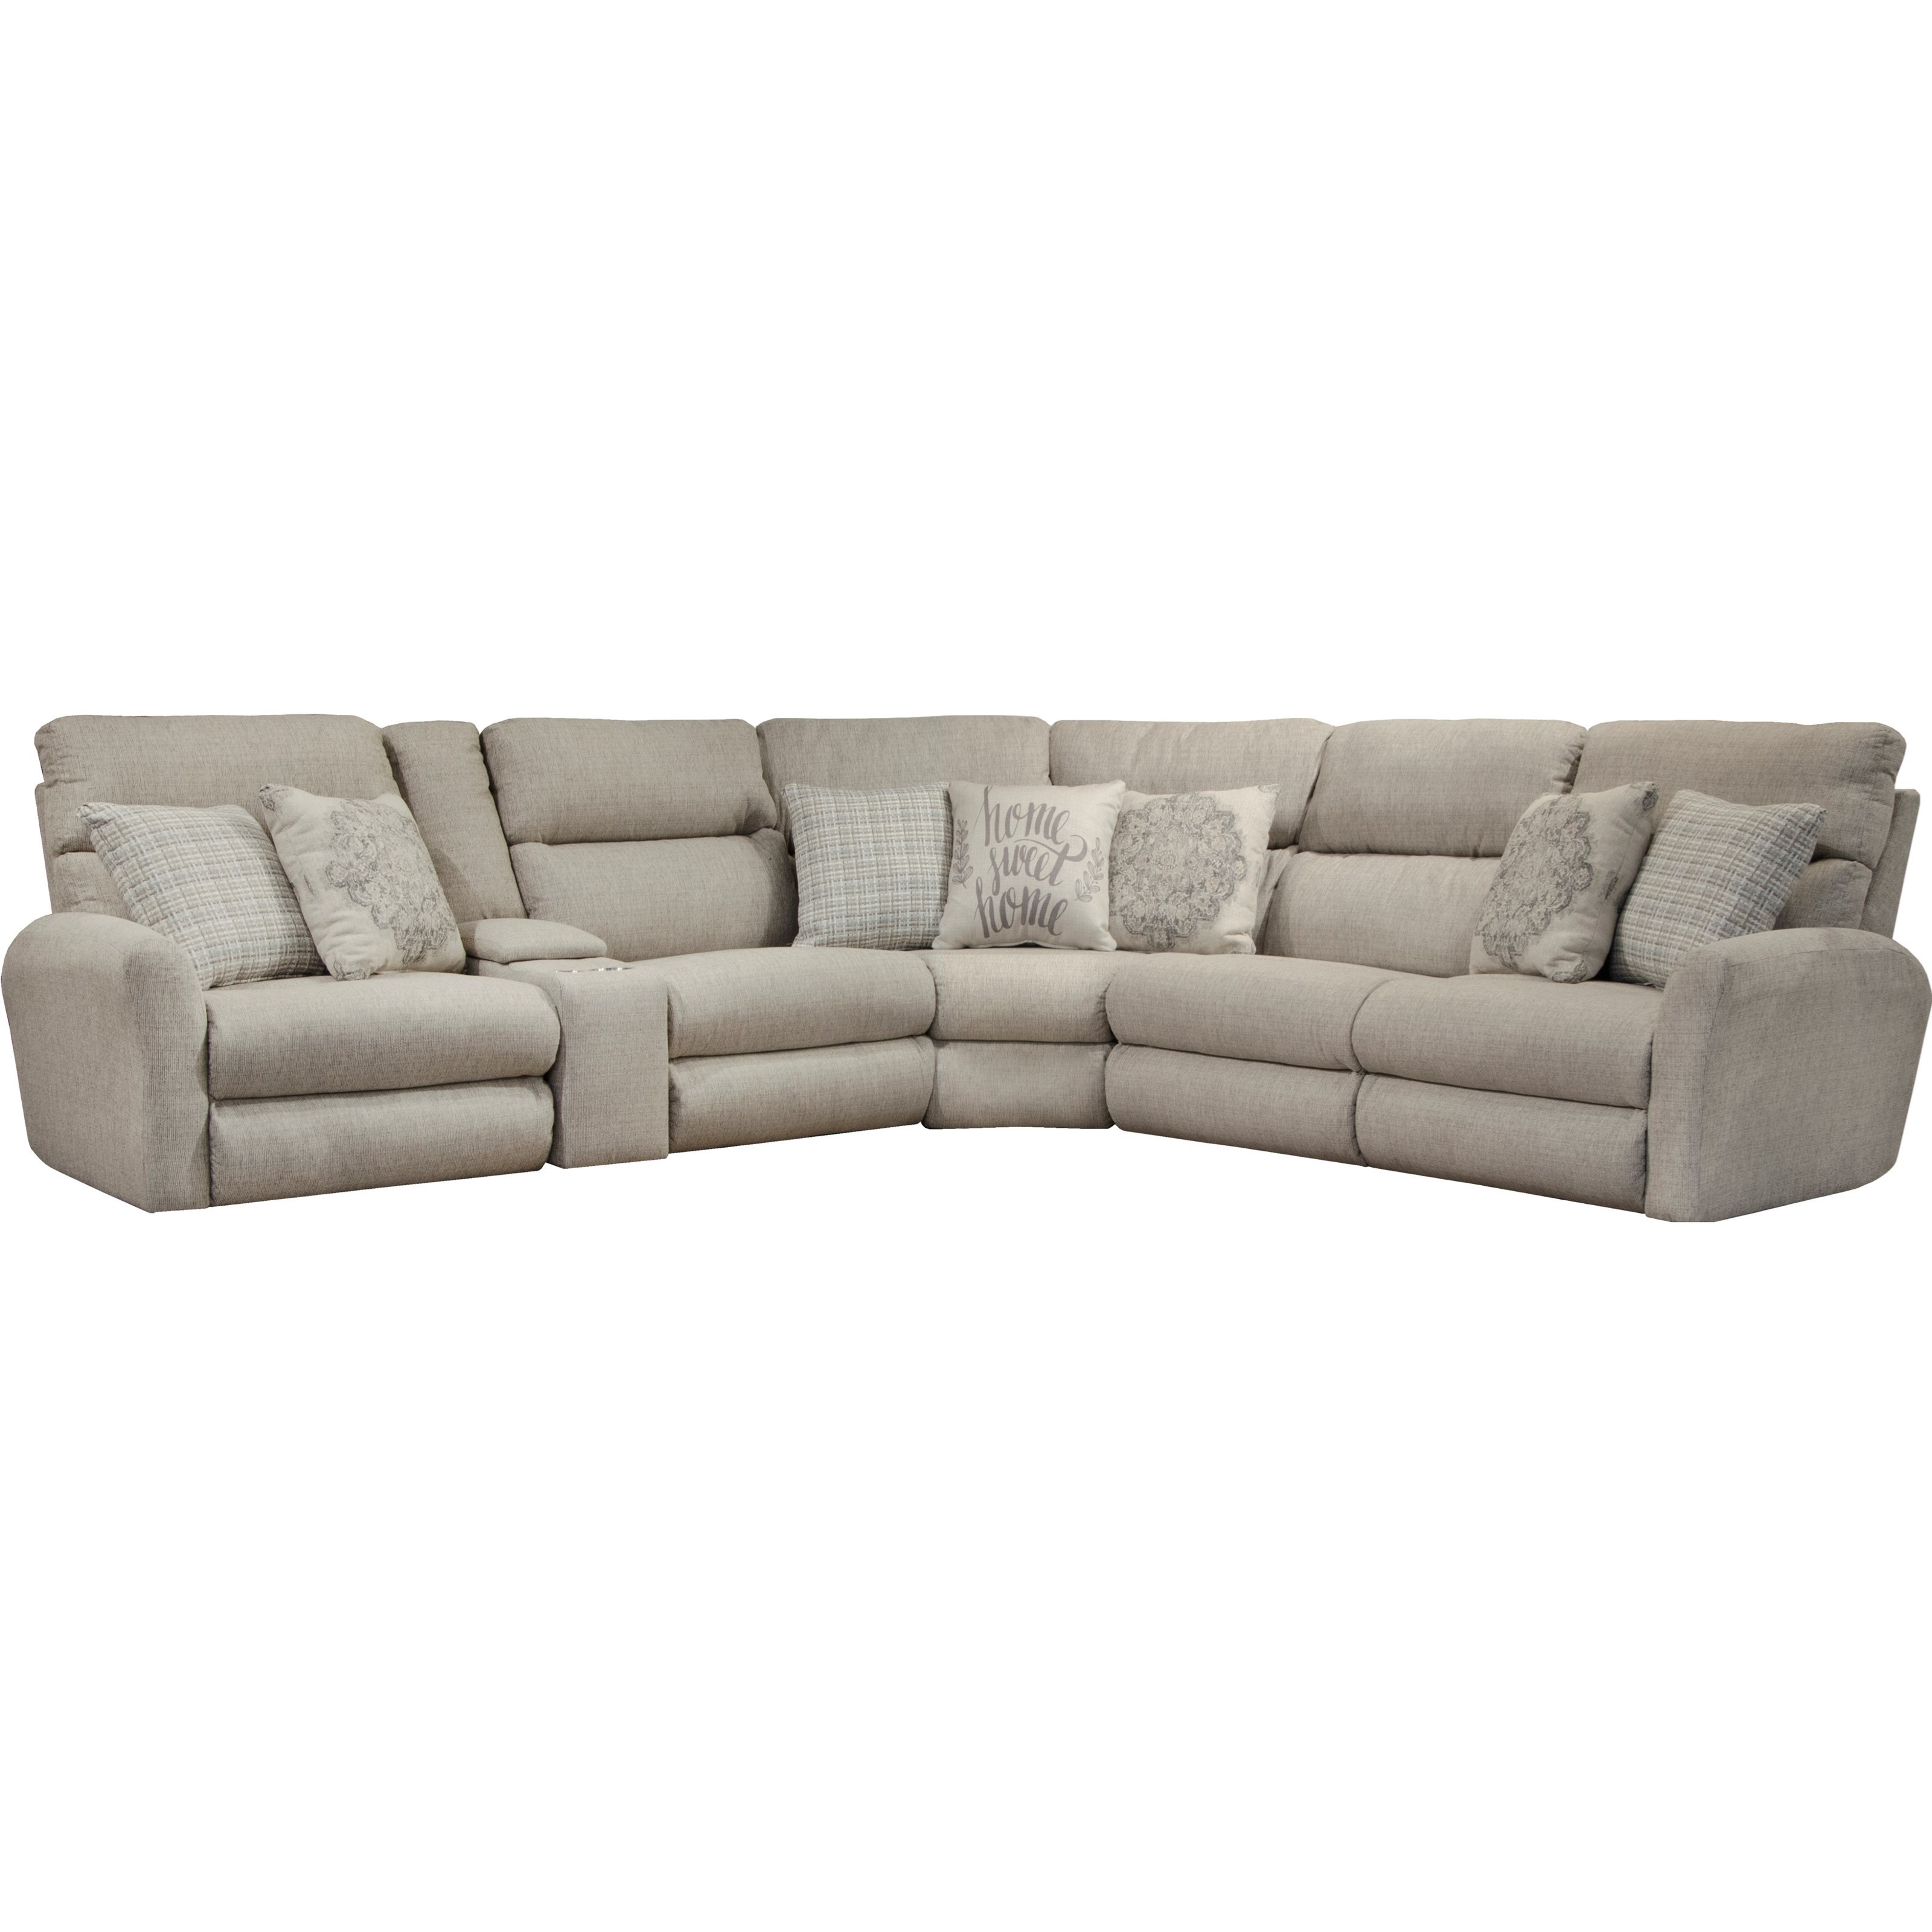 McPherson Power Reclining Sectional by Catnapper at Northeast Factory Direct